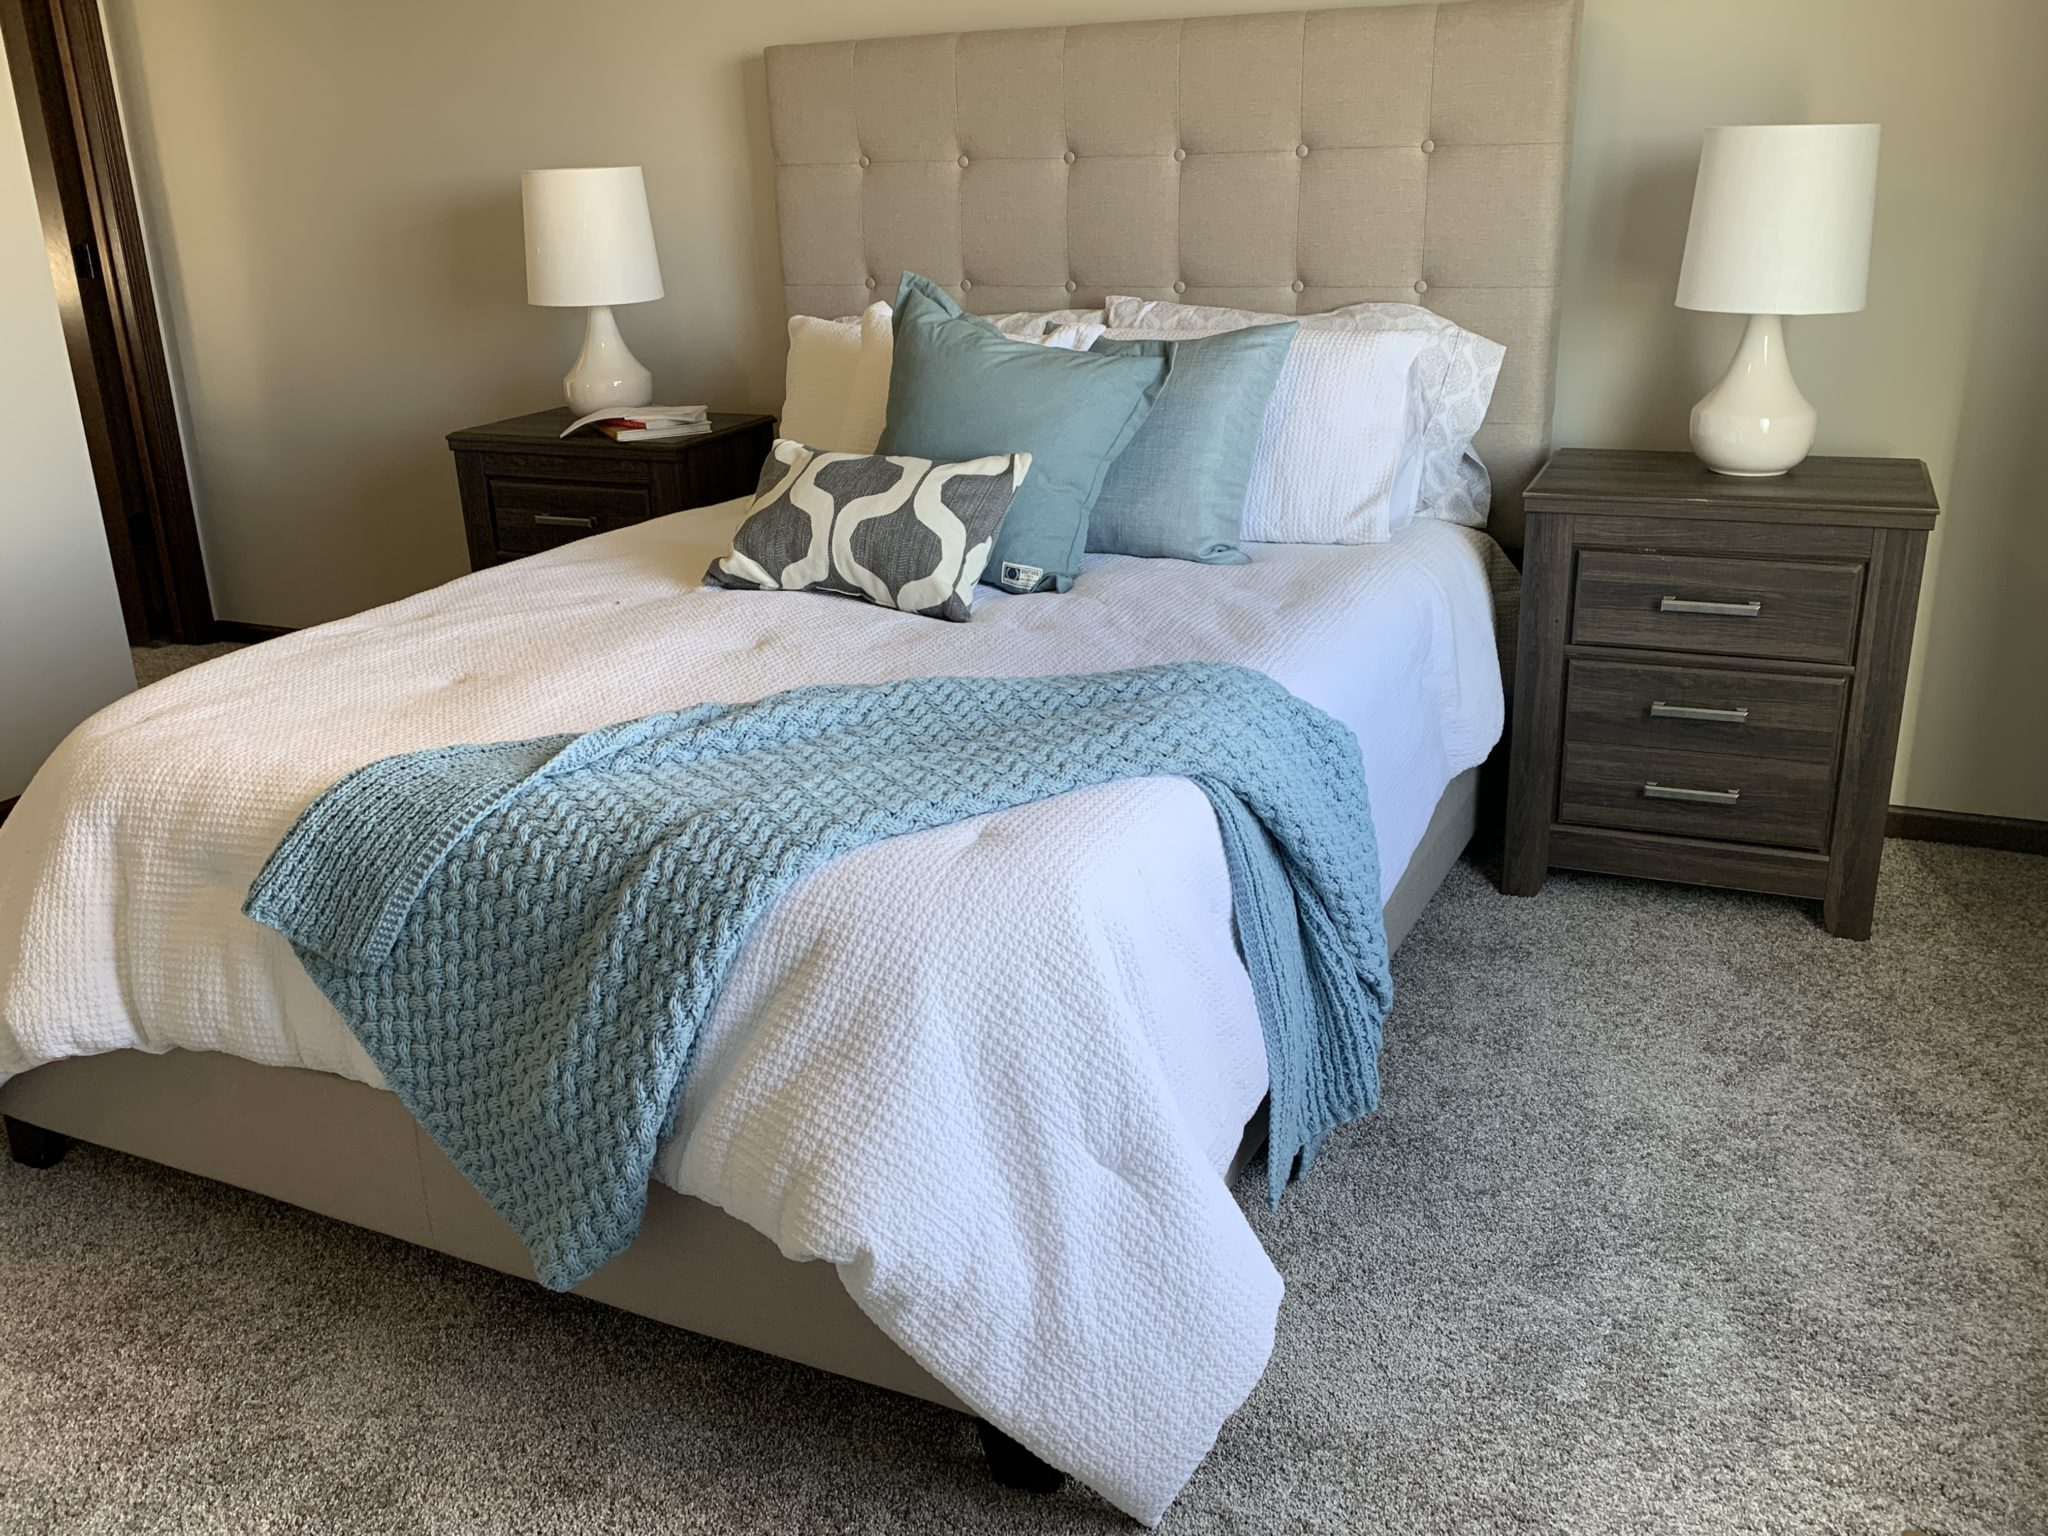 Bedroom with soft carpeting